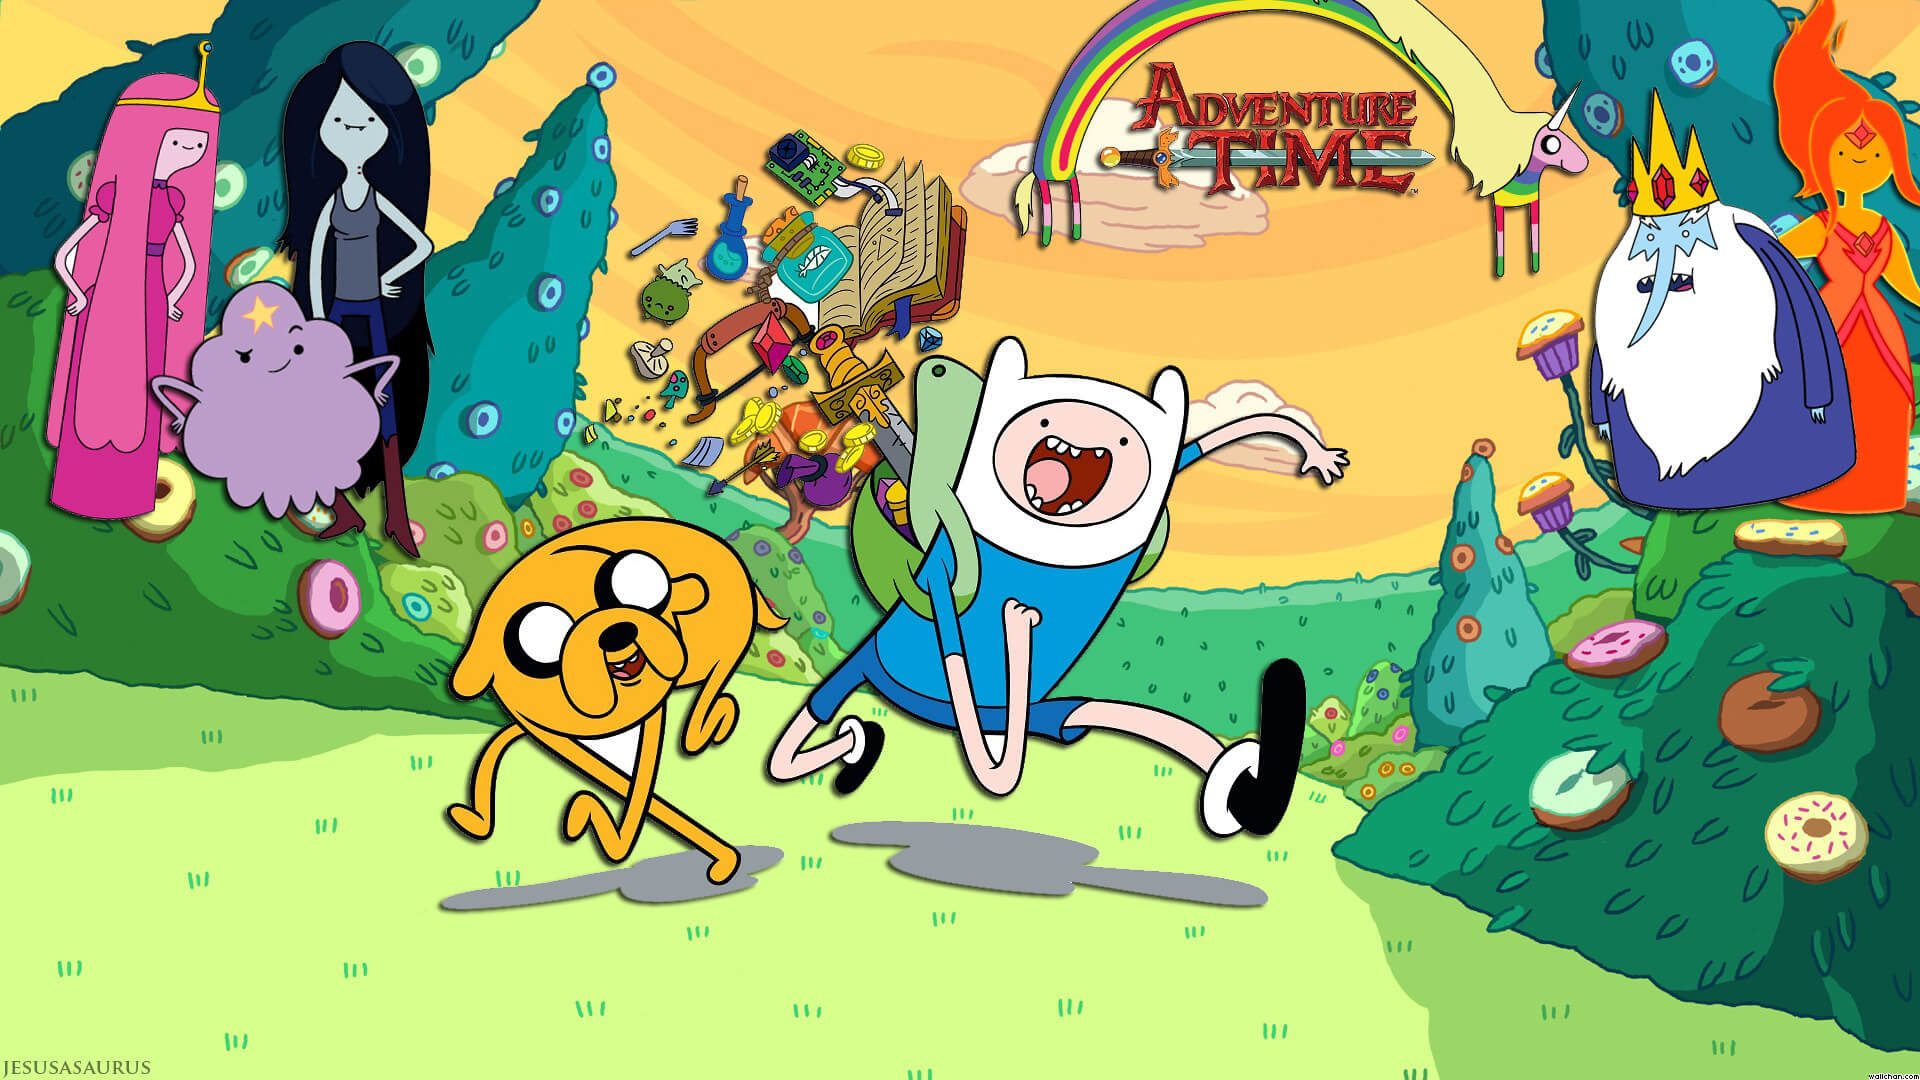 Review: Adventure Time: Finn & Jake Investigations